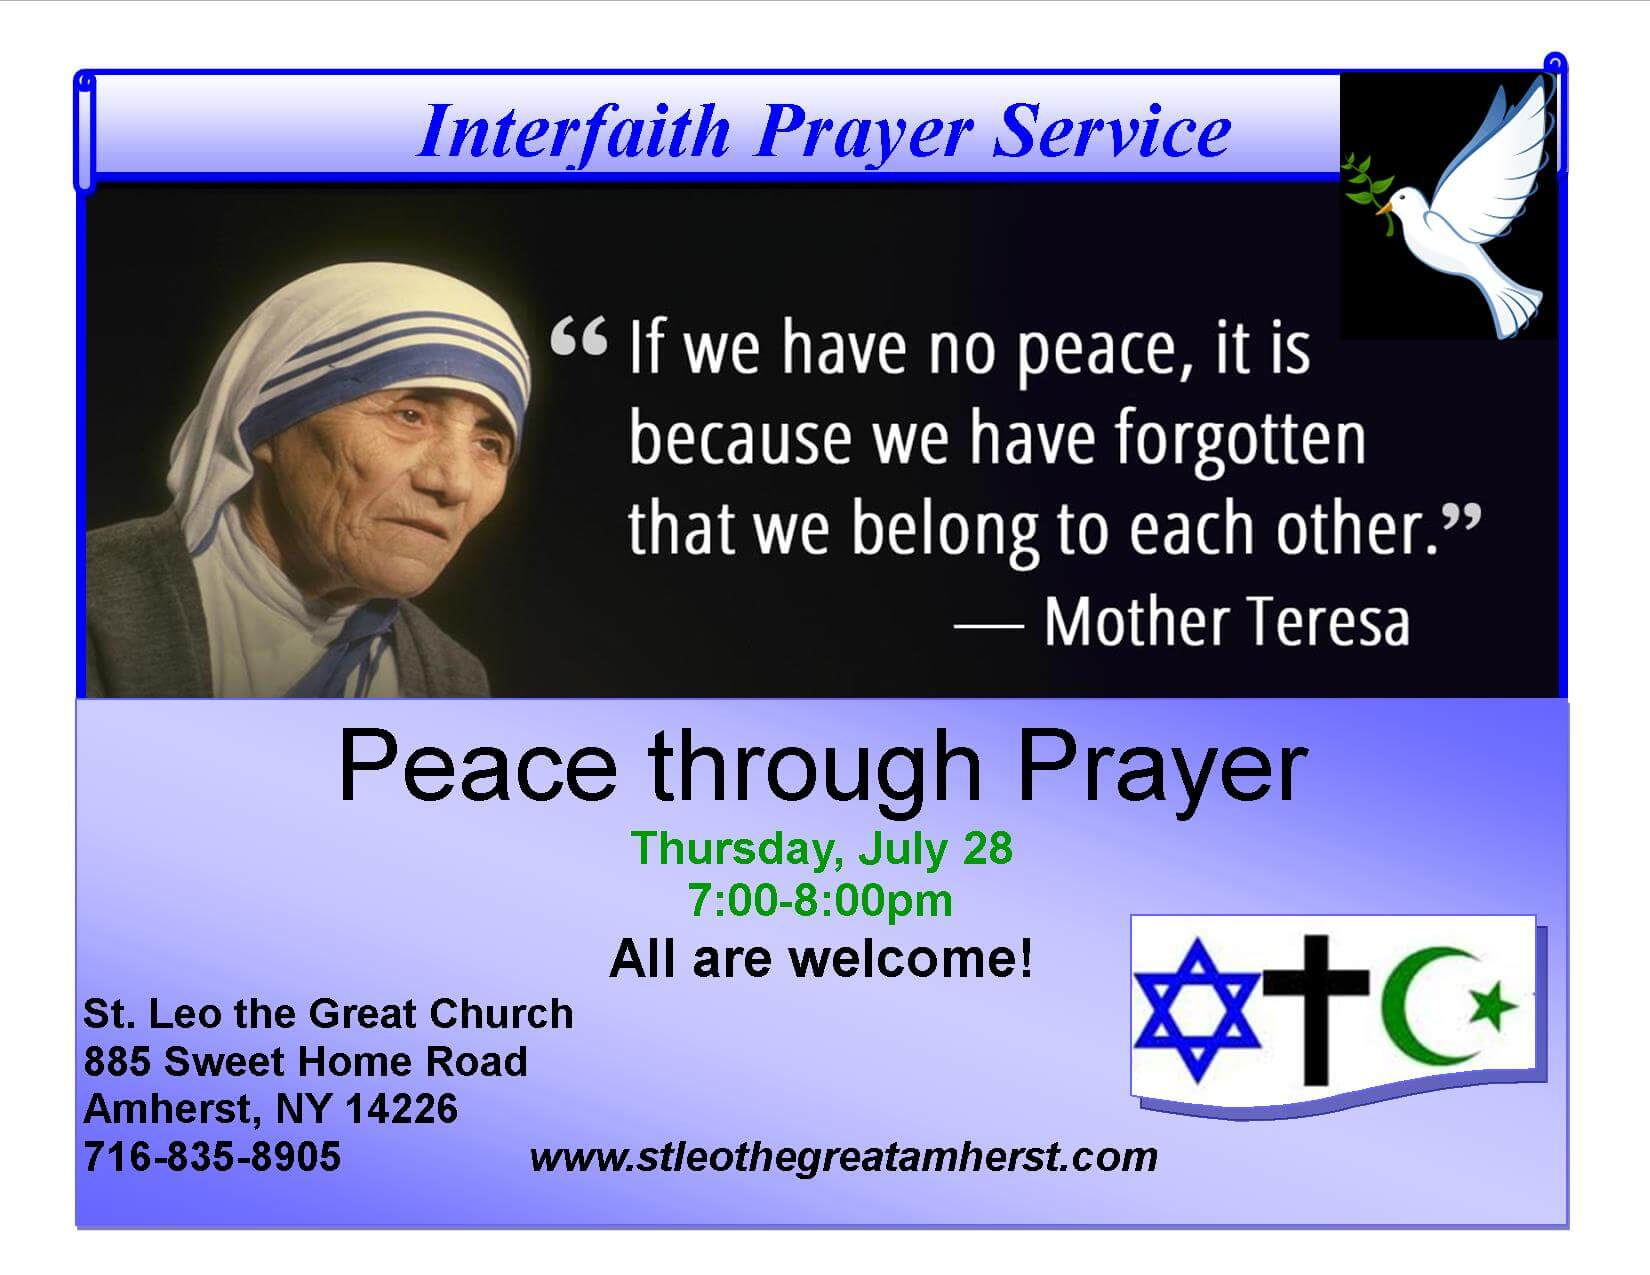 Interfaith Prayer Service Photo Gallery